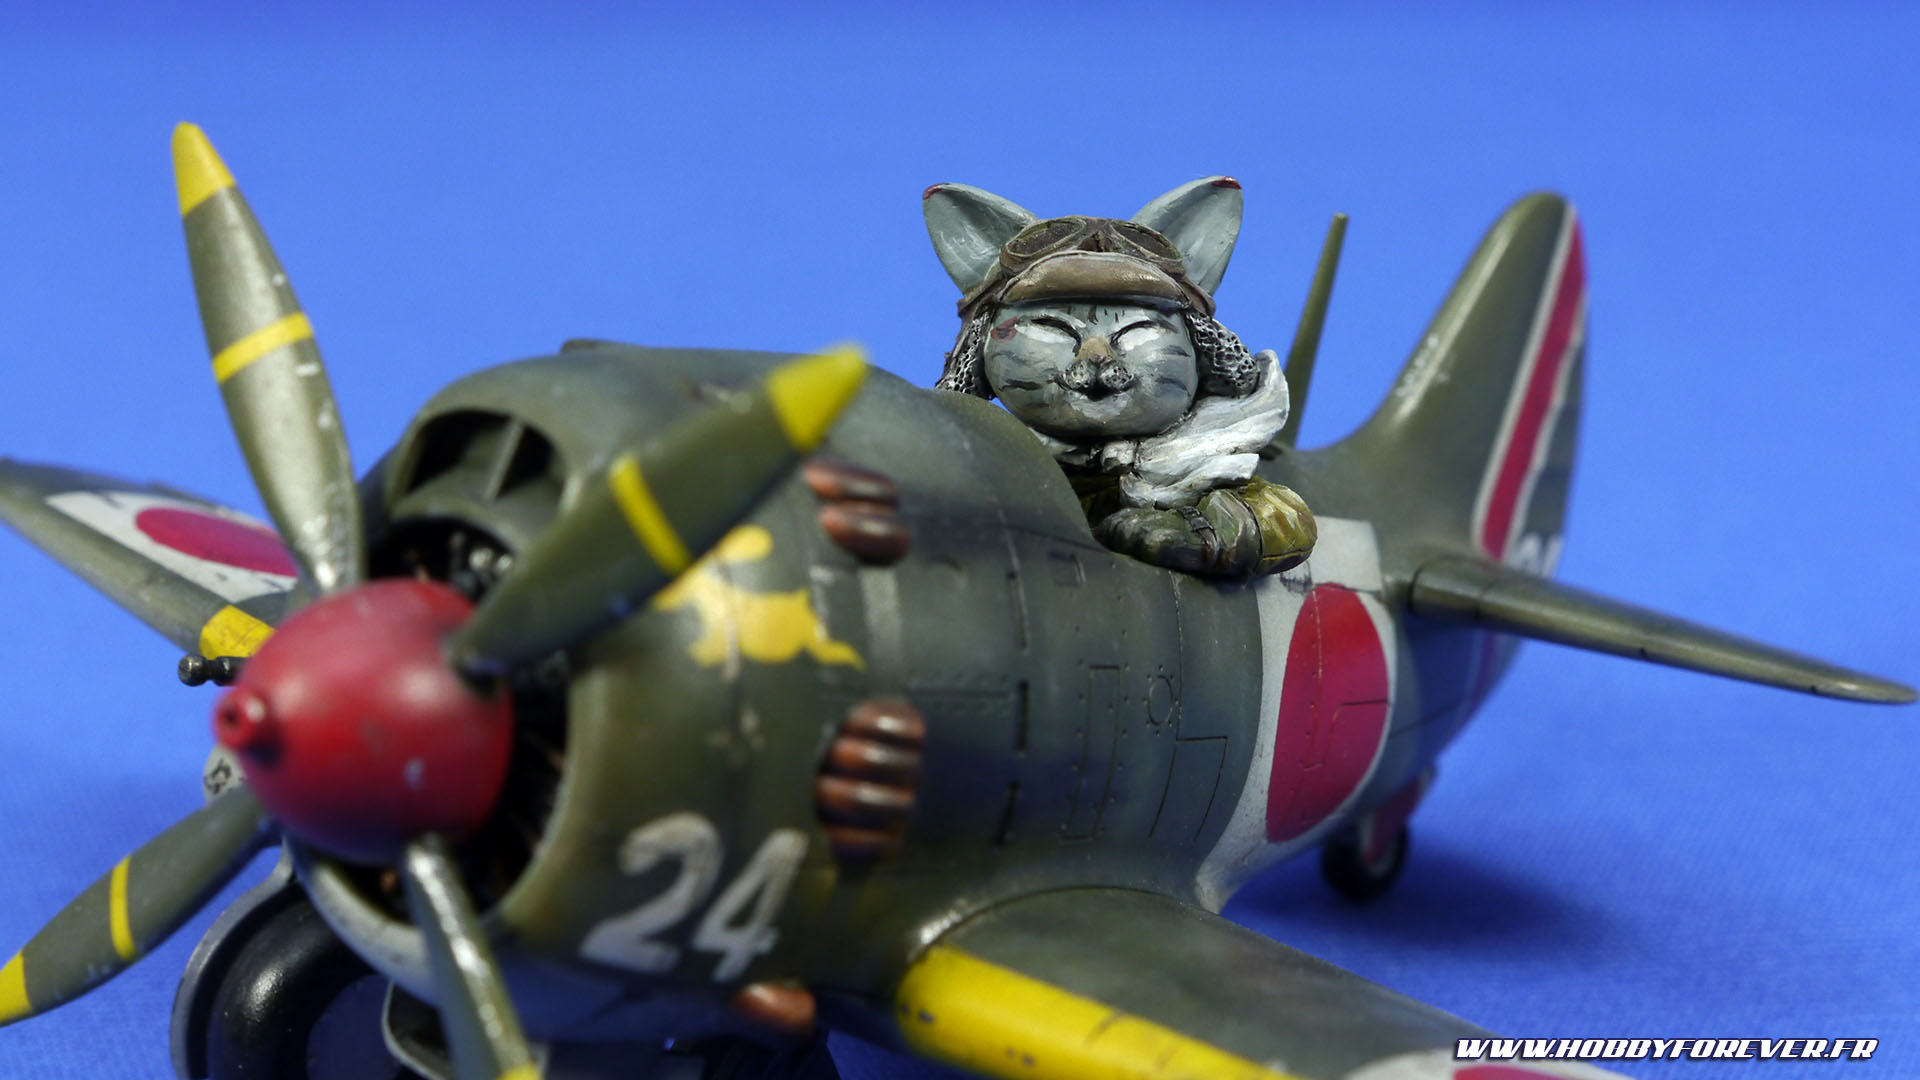 Finished work - Ki-84 Nakajima Cute Model w/ Cat Pilot